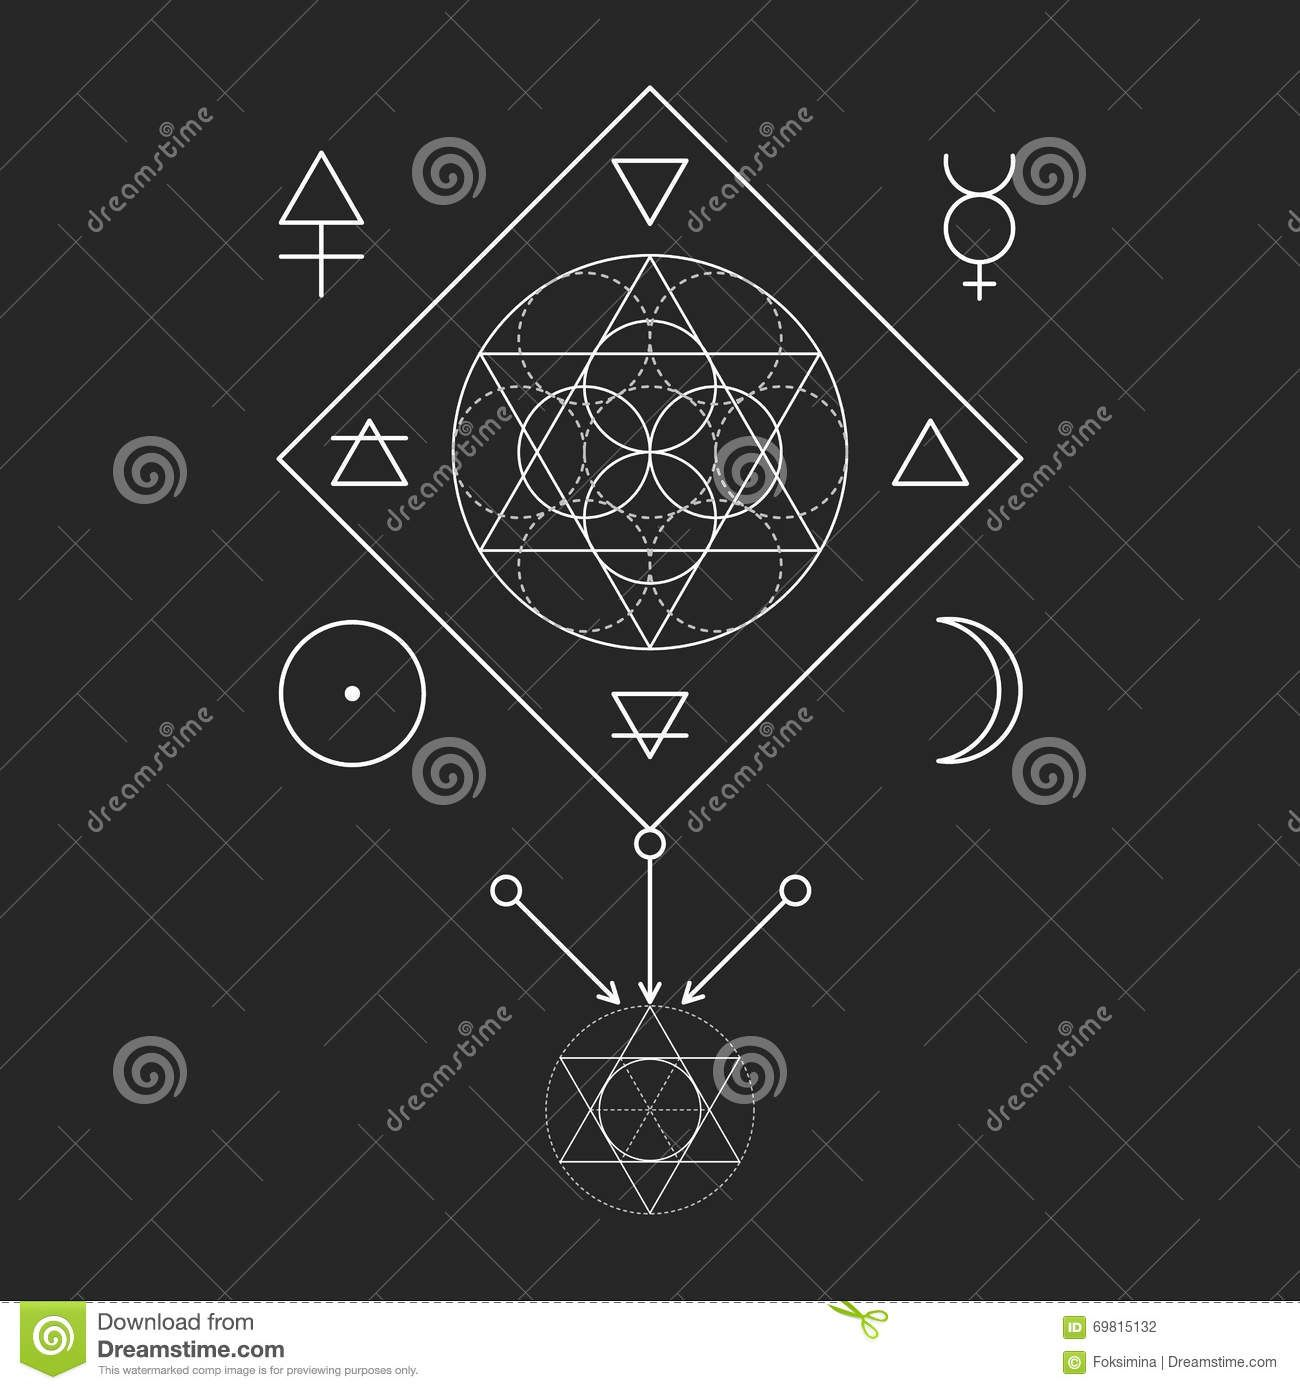 Symbol of alchemy and sacred geometry three primes spirit soul symbol of alchemy and sacred geometry three primes spirit soul buycottarizona Choice Image